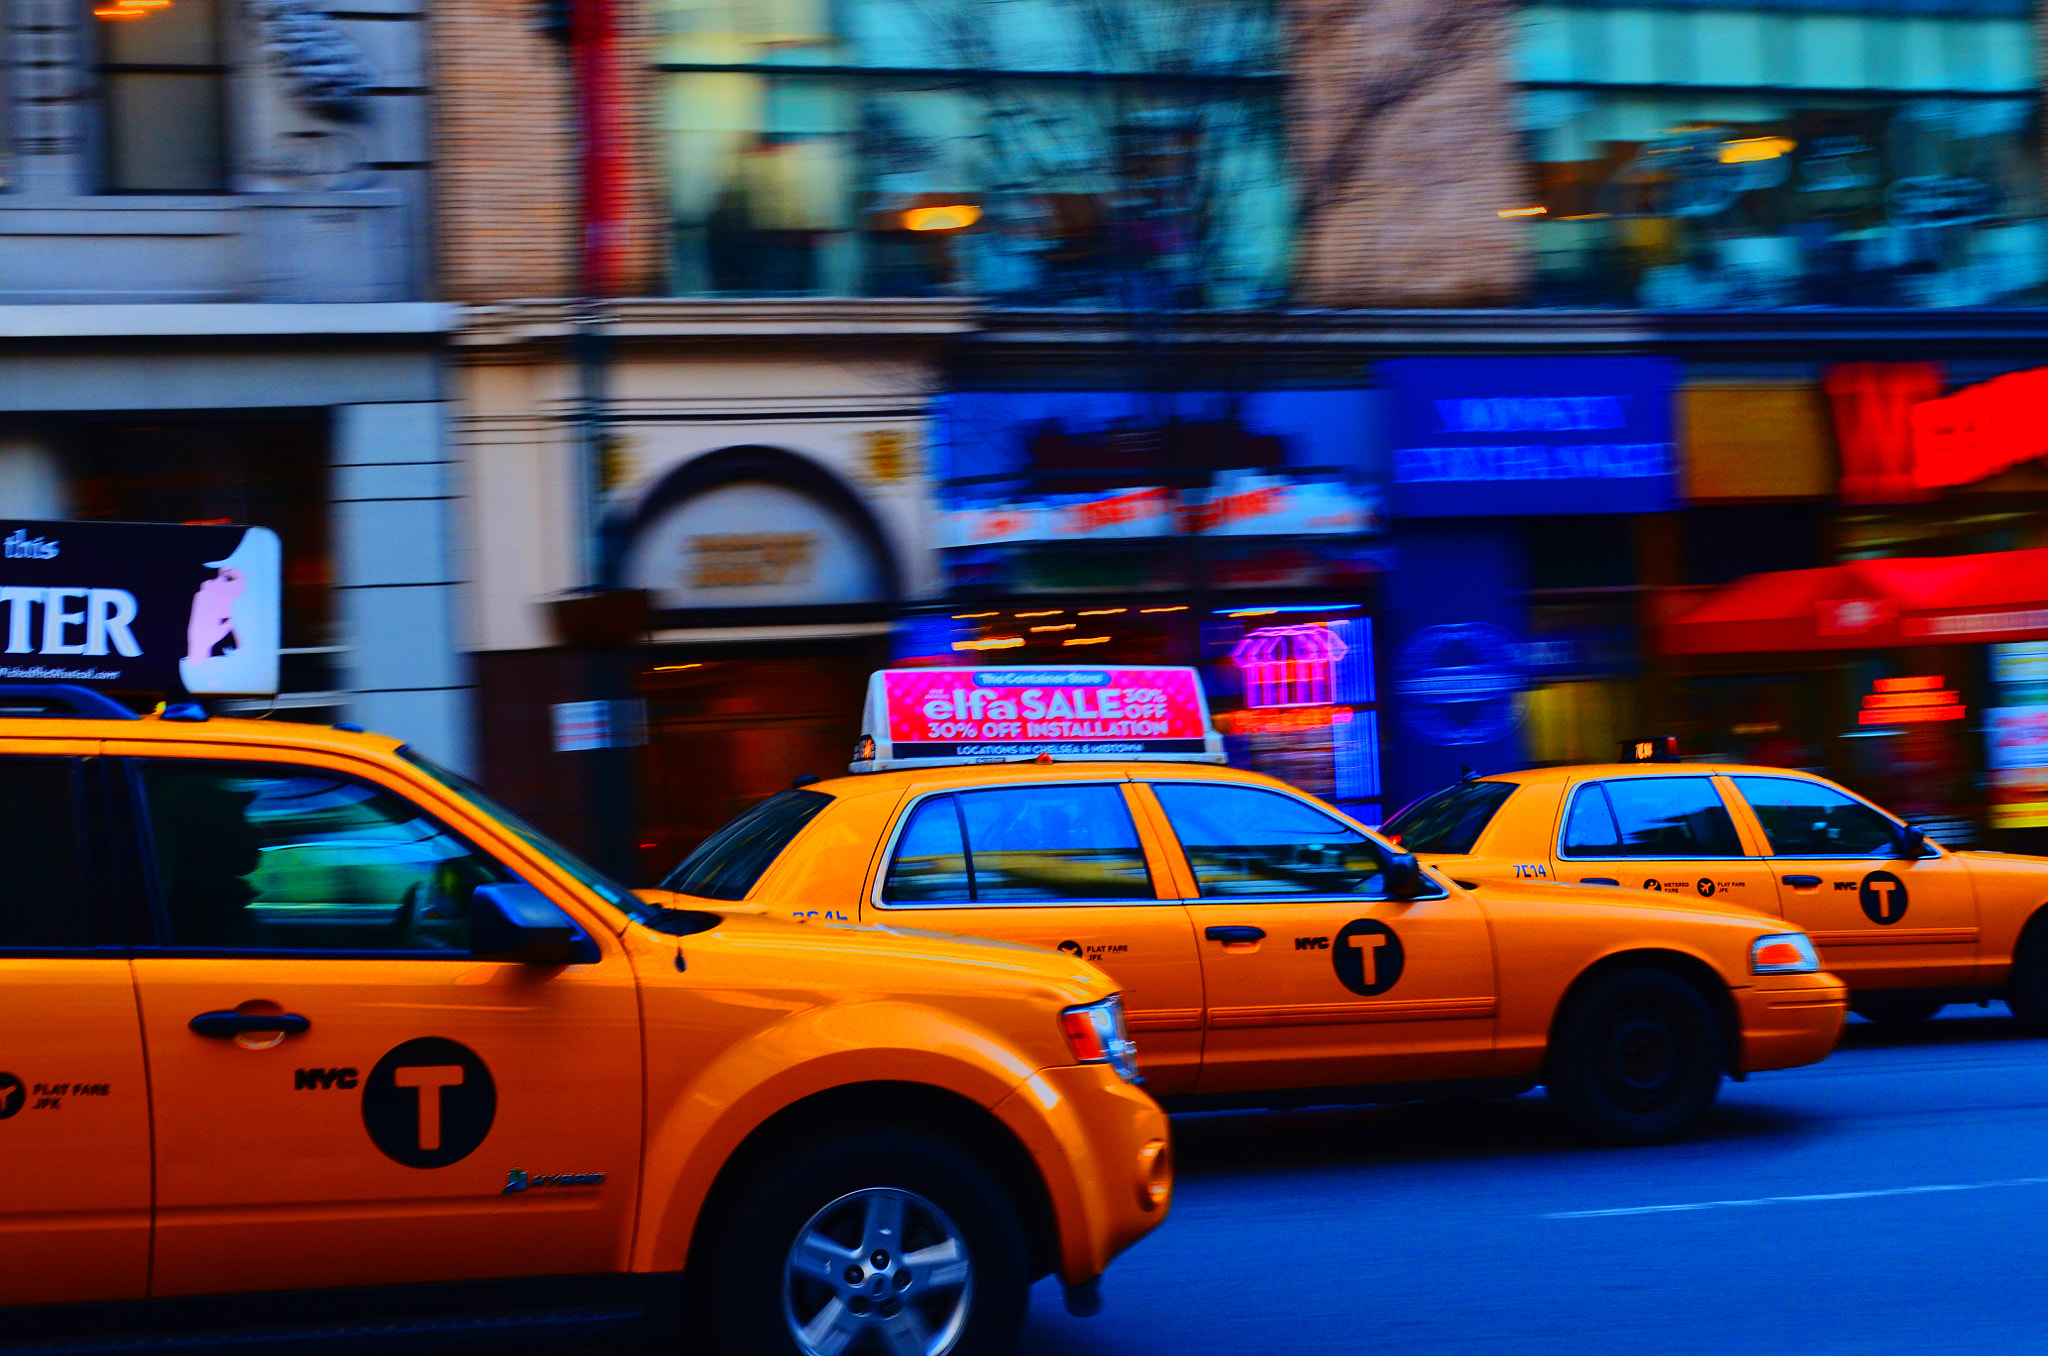 Photograph NY Cabs by chris Gura on 500px